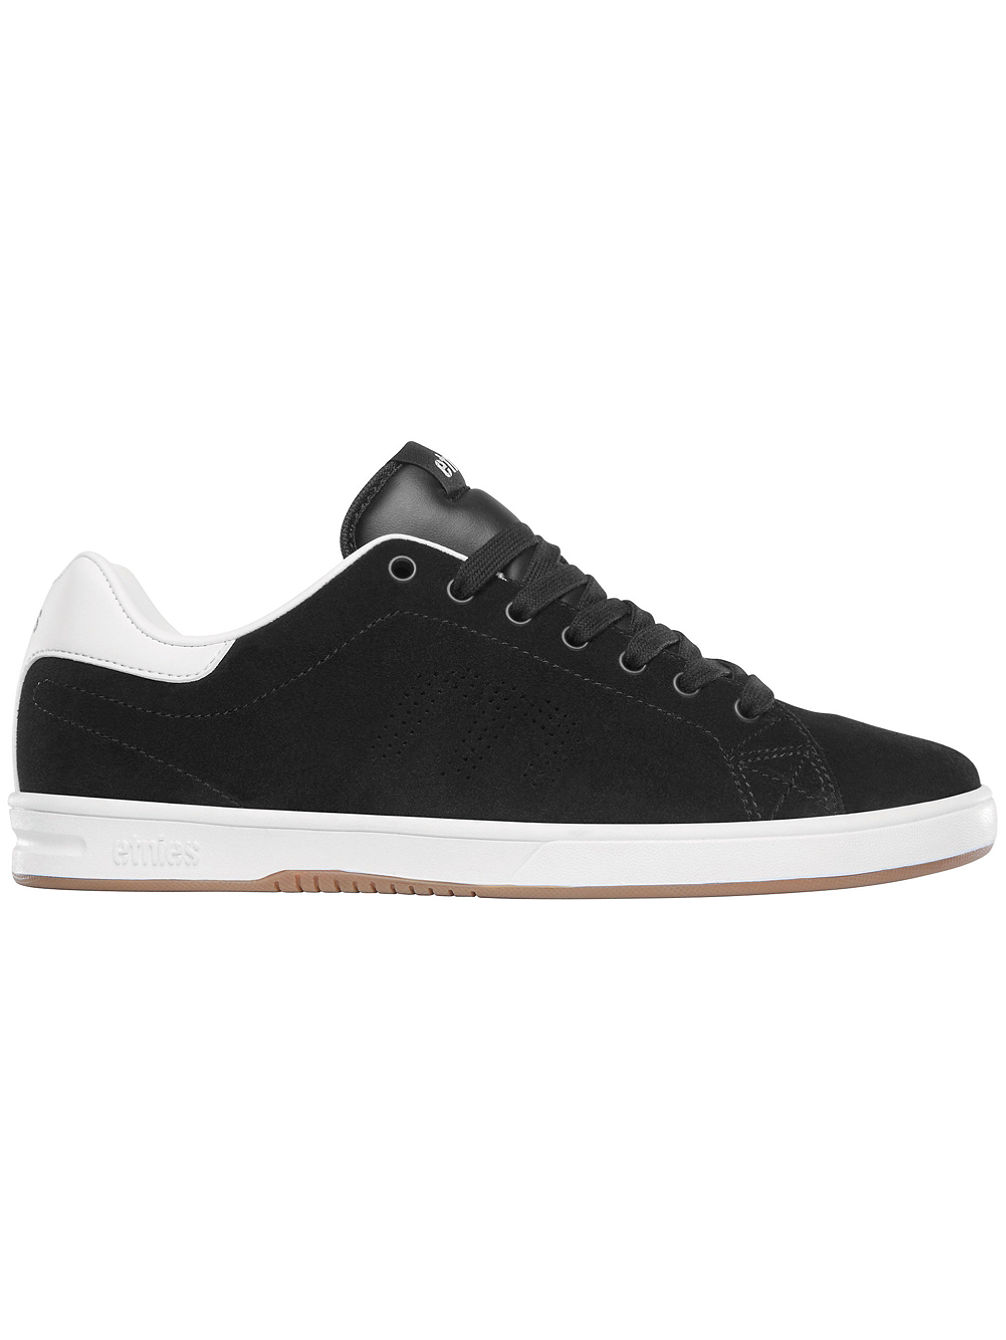 Callicut LS Skate Shoes